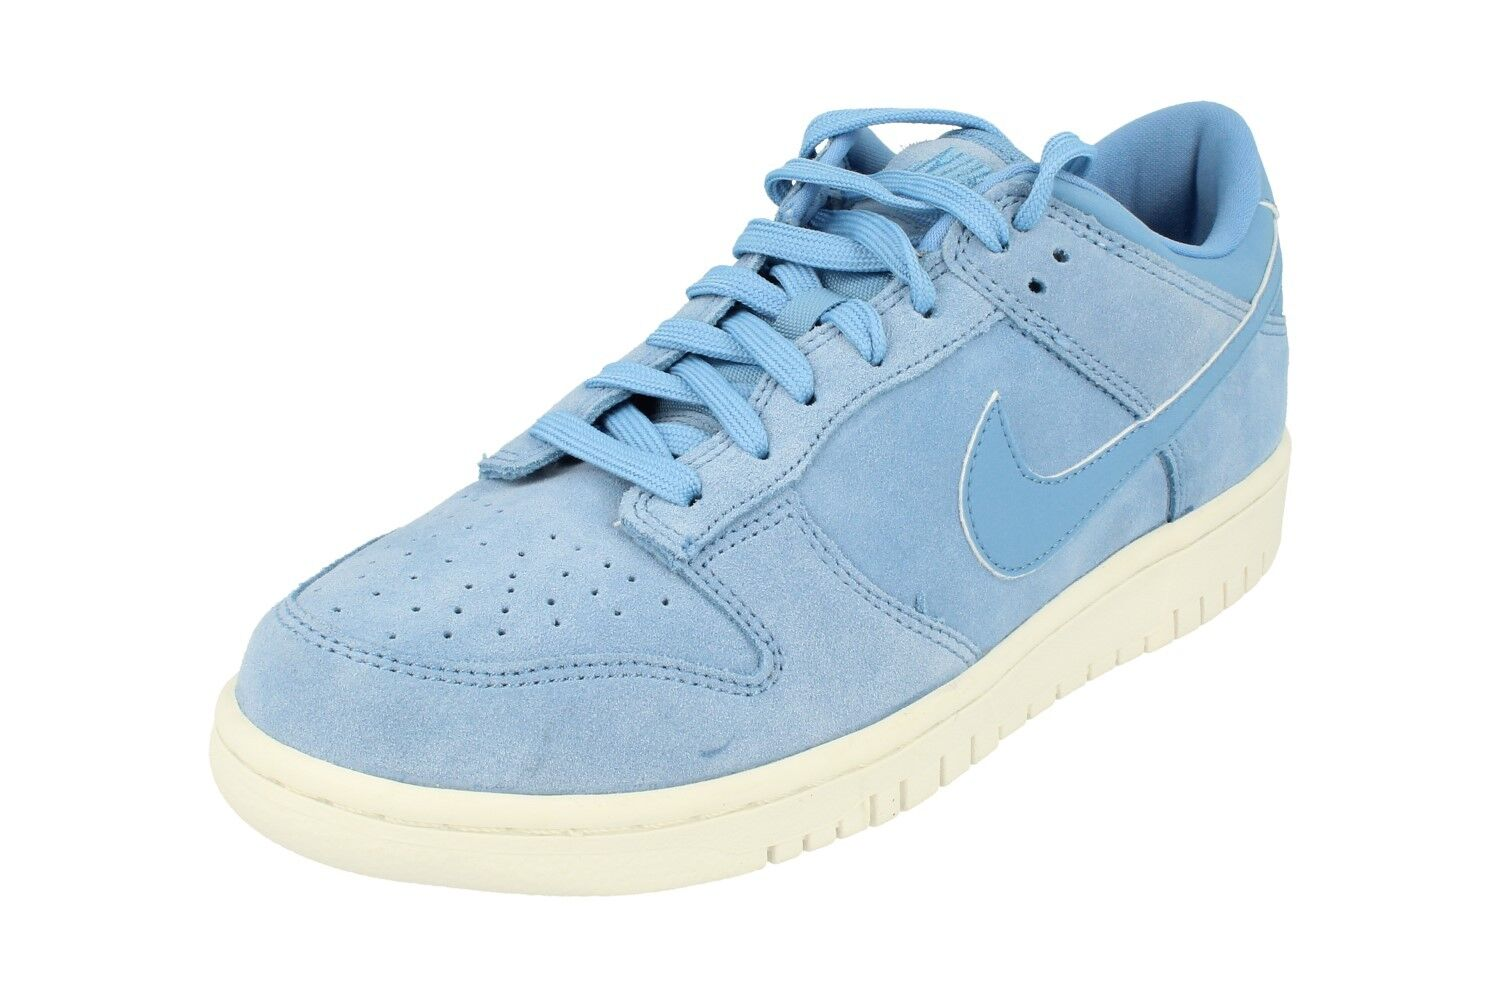 Nike Dunk Low PRM Mens Trainers 921307 Sneakers Shoes 400 Wild casual shoes